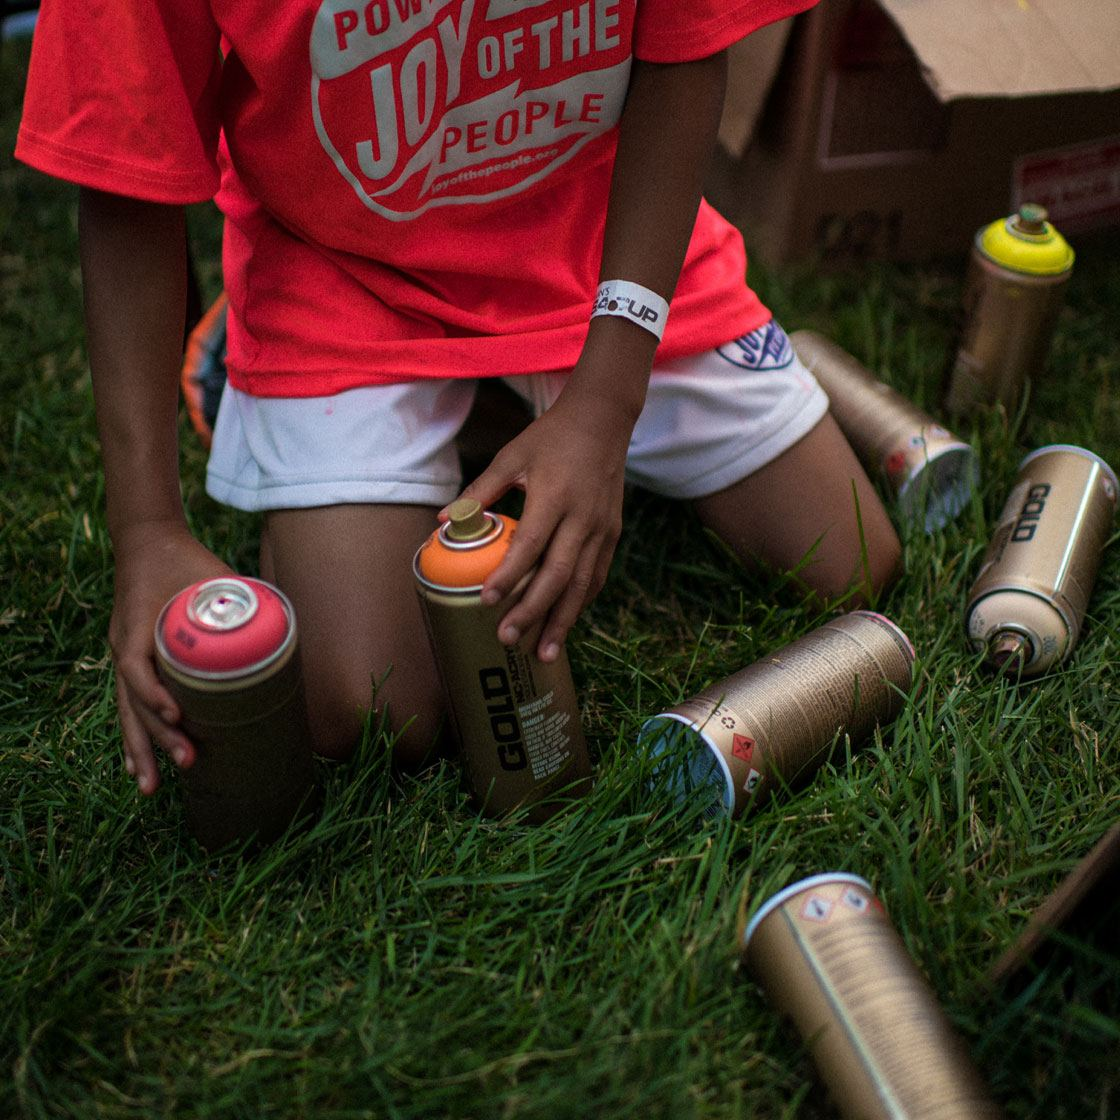 A young person handling several paint cans in different colors